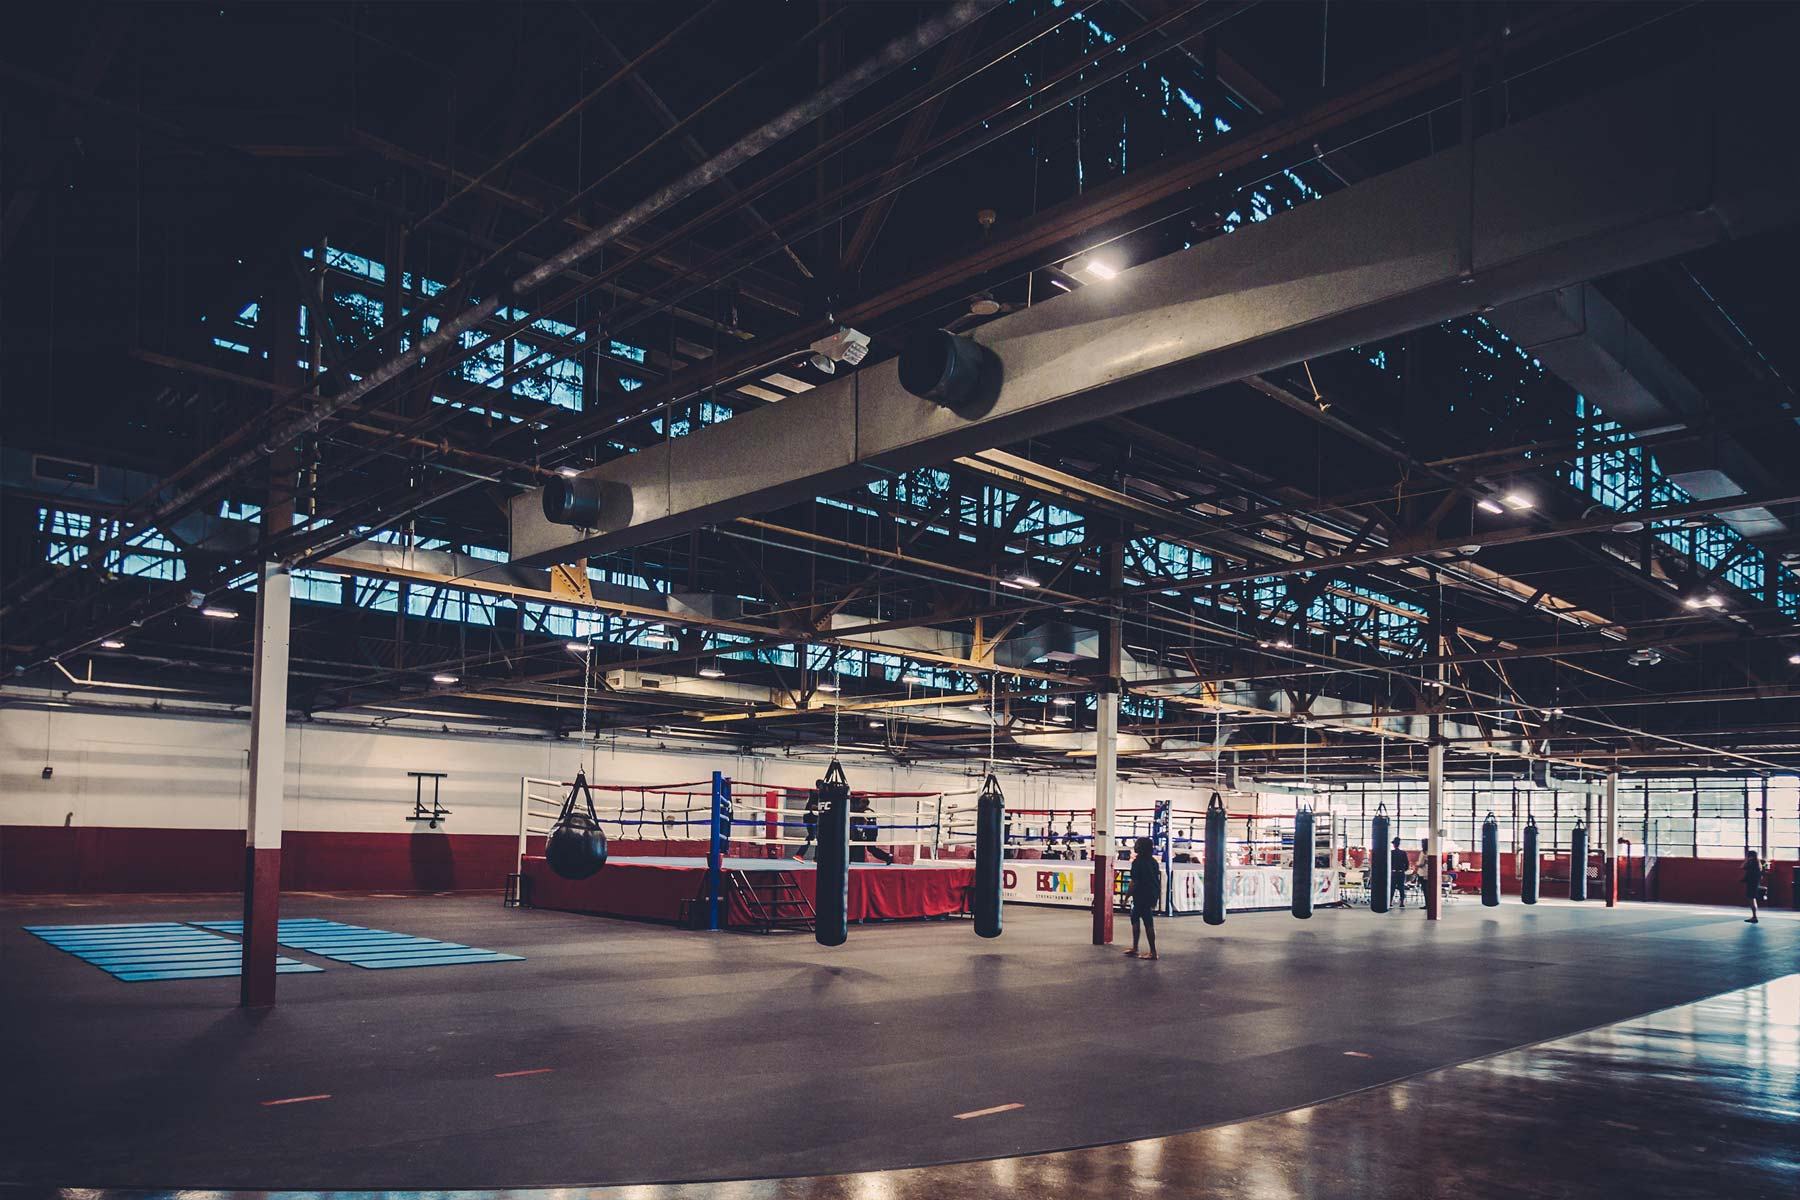 Downtown boxing gym detroit youth boxing and educational program